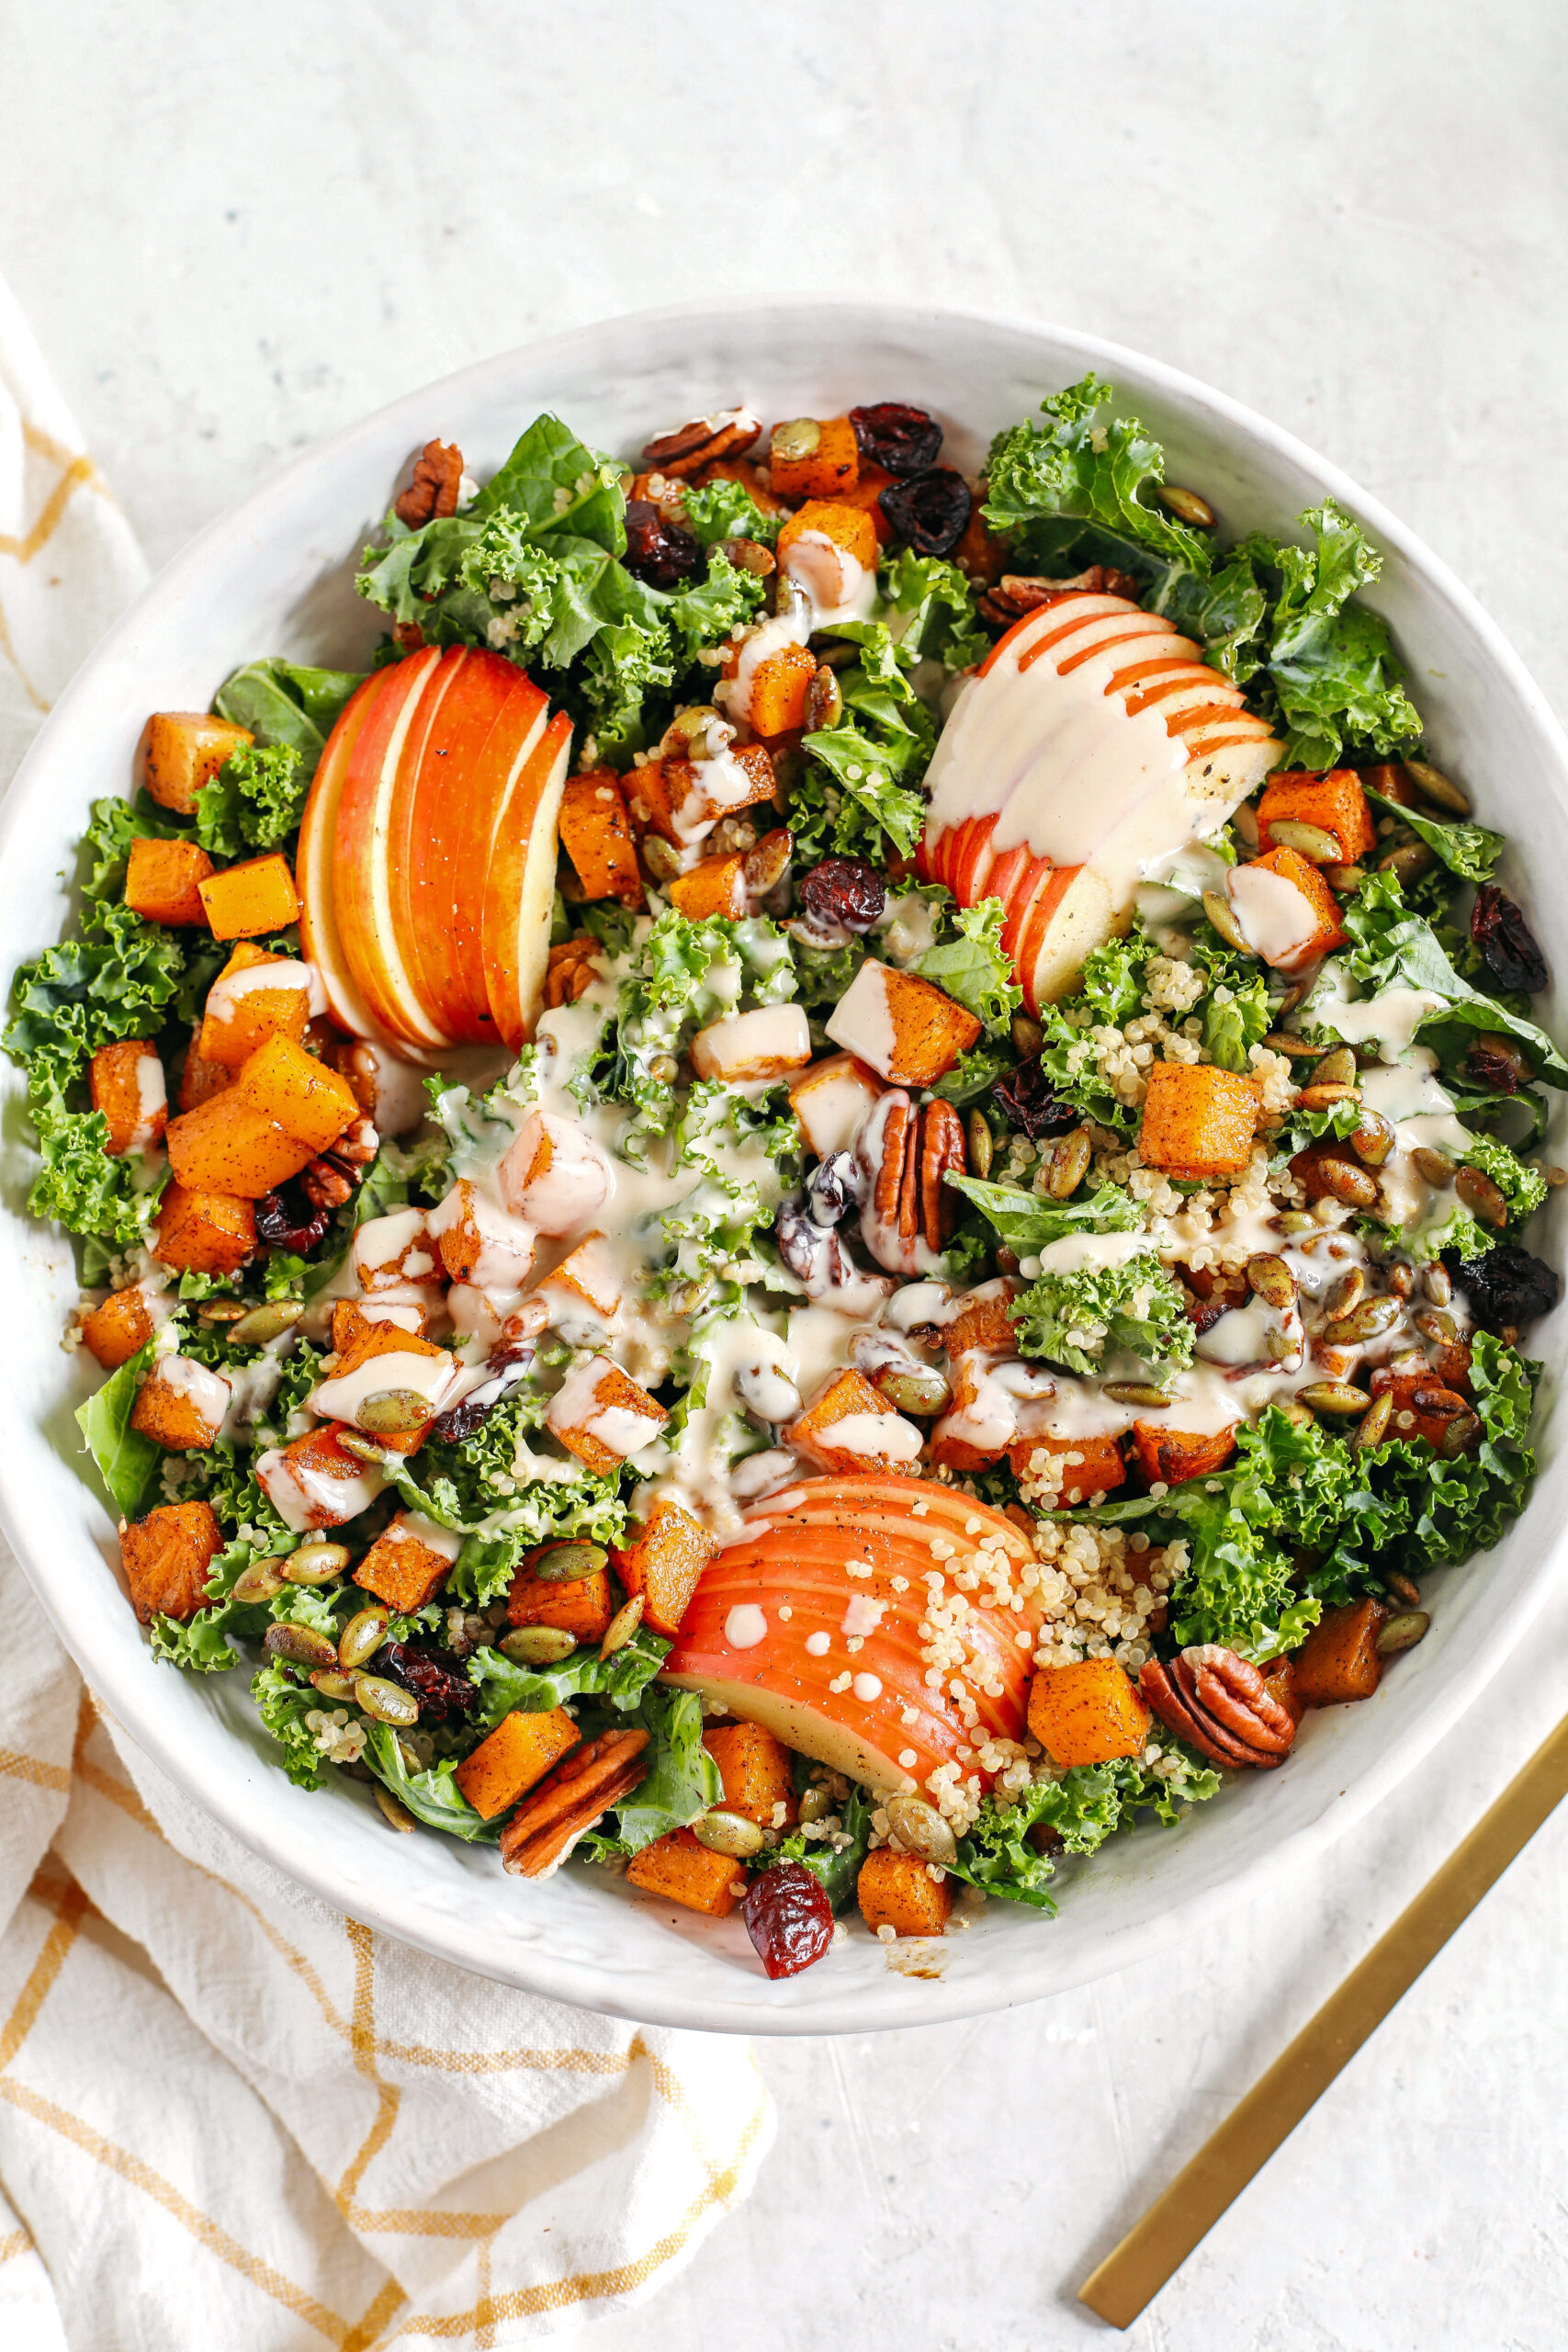 The ultimate powerhouse Fall Salad made with leafy kale, protein-packed quinoa, sliced apples, roasted butternut squash, and spiced pepitas and pecans, all drizzled in the most delicious maple tahini dressing!